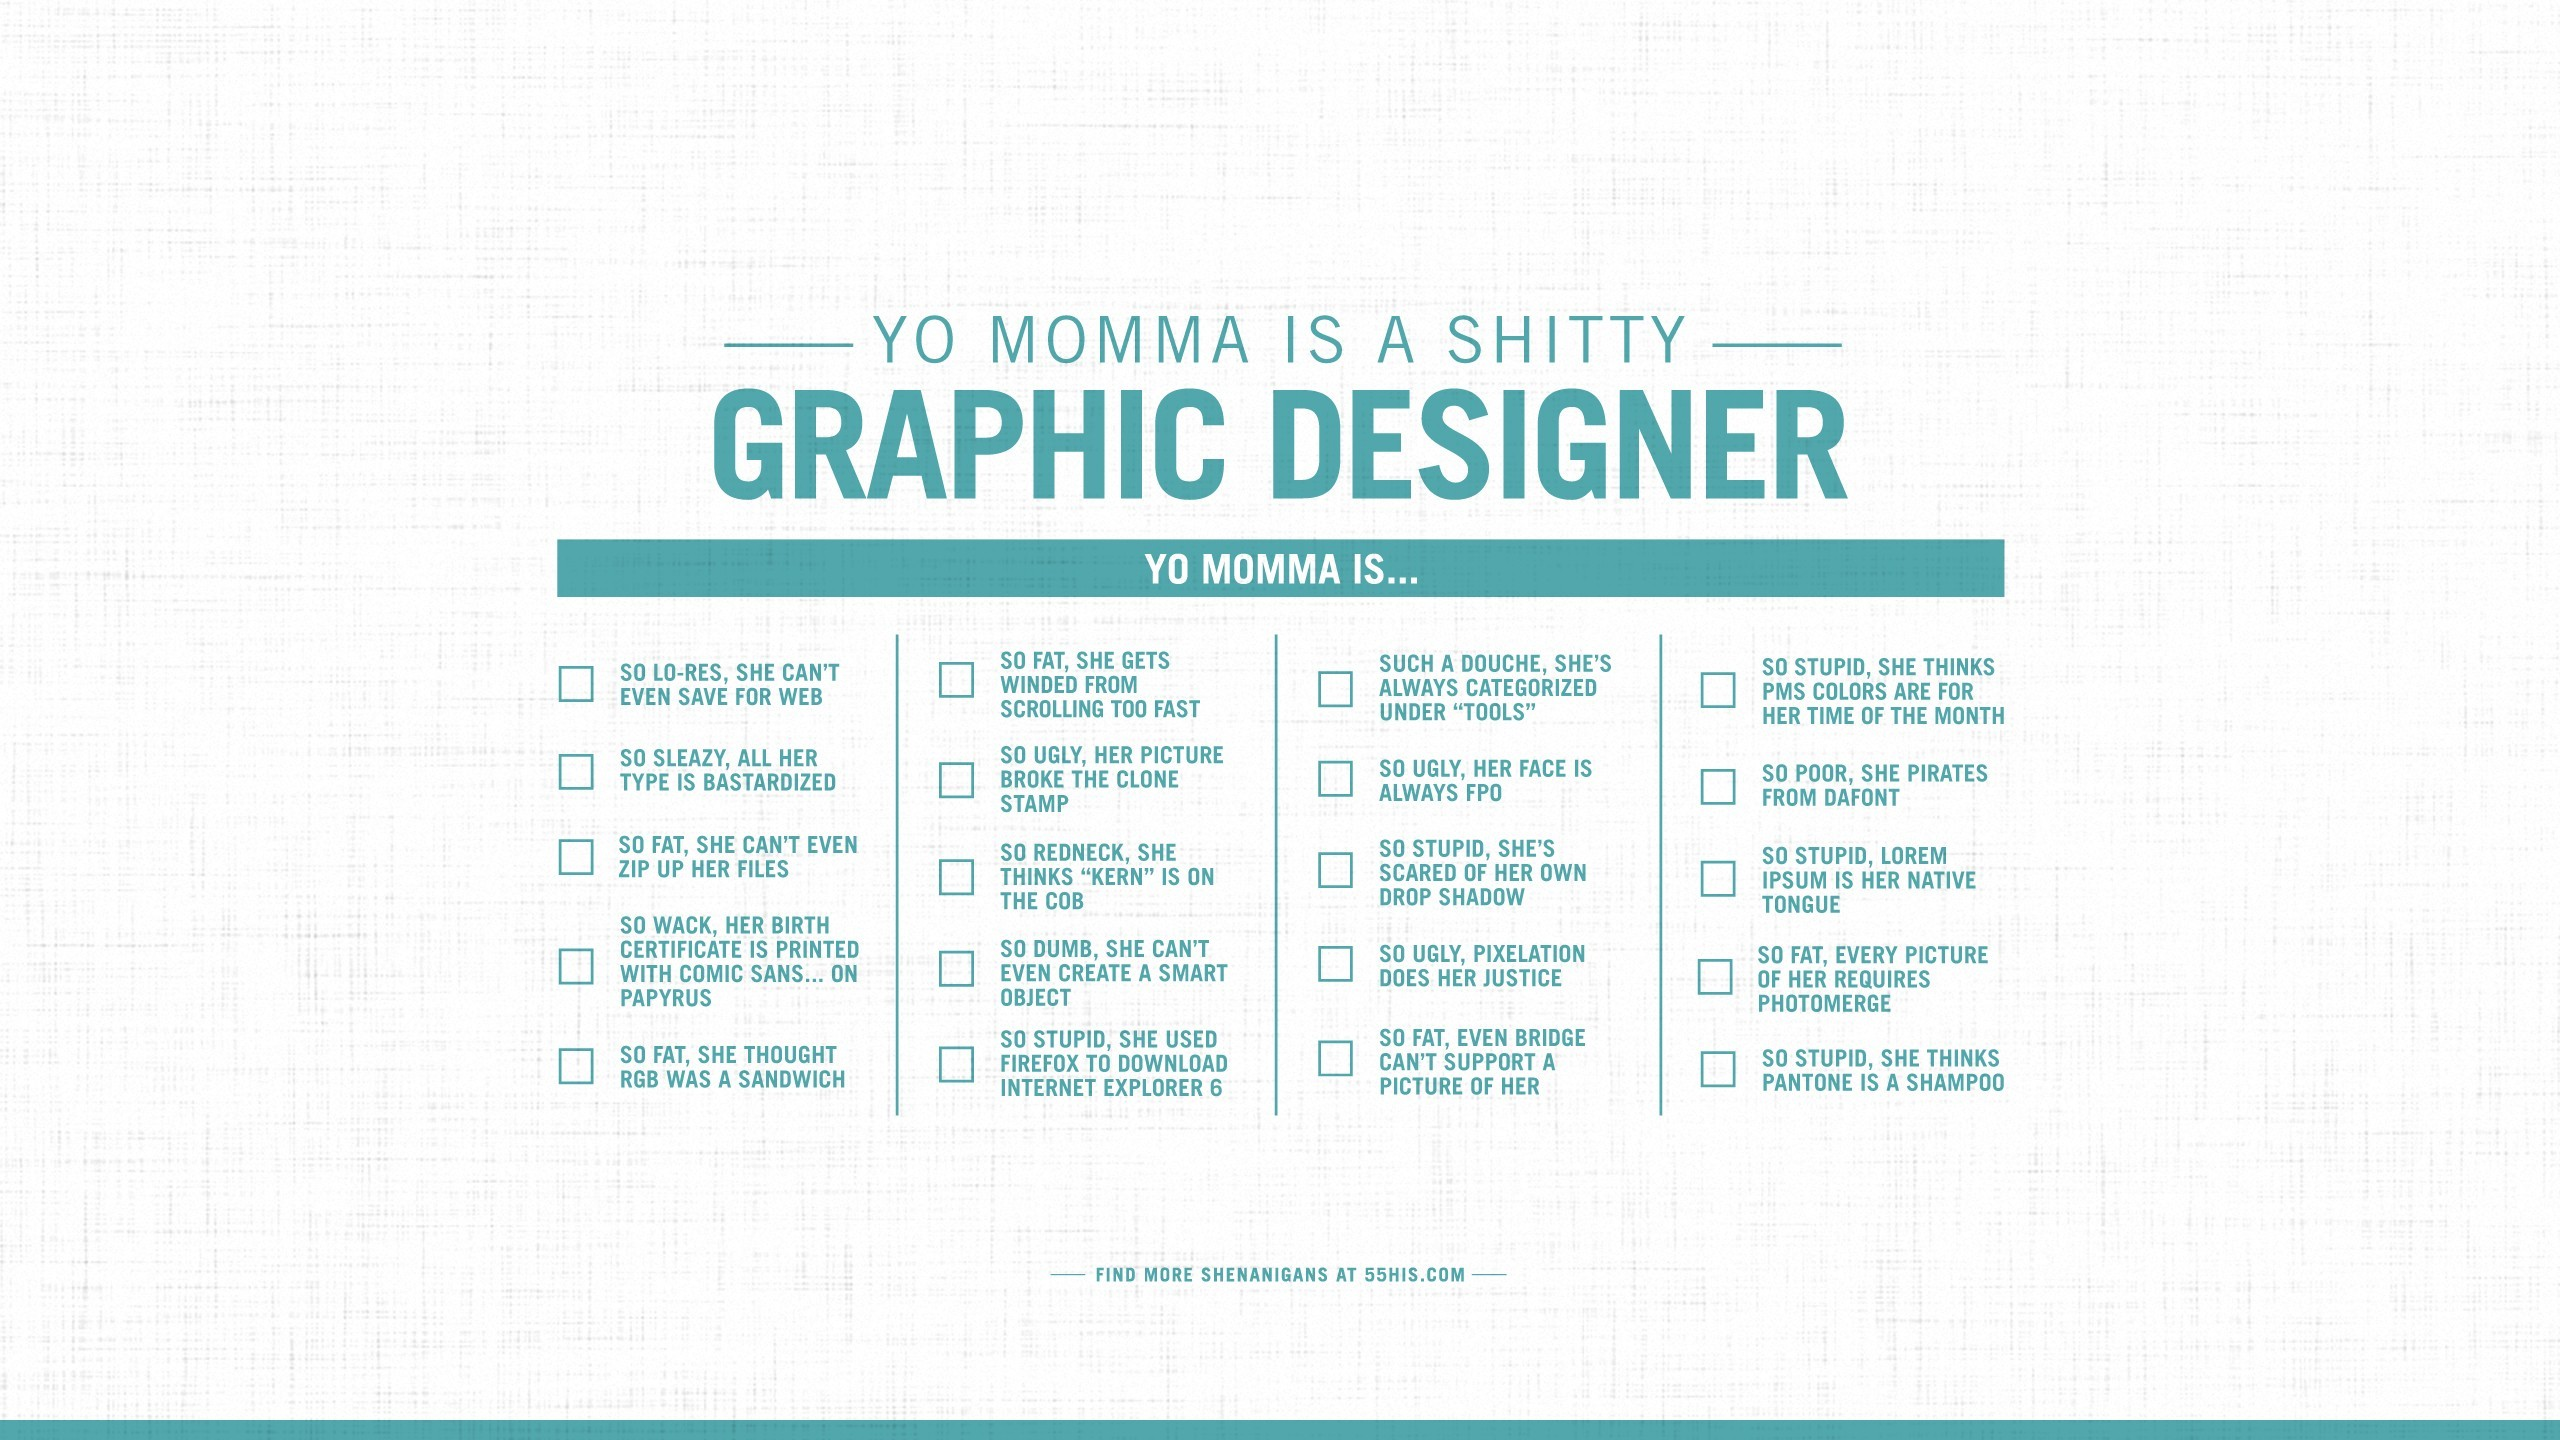 Yo momma is a shitty graphic designer